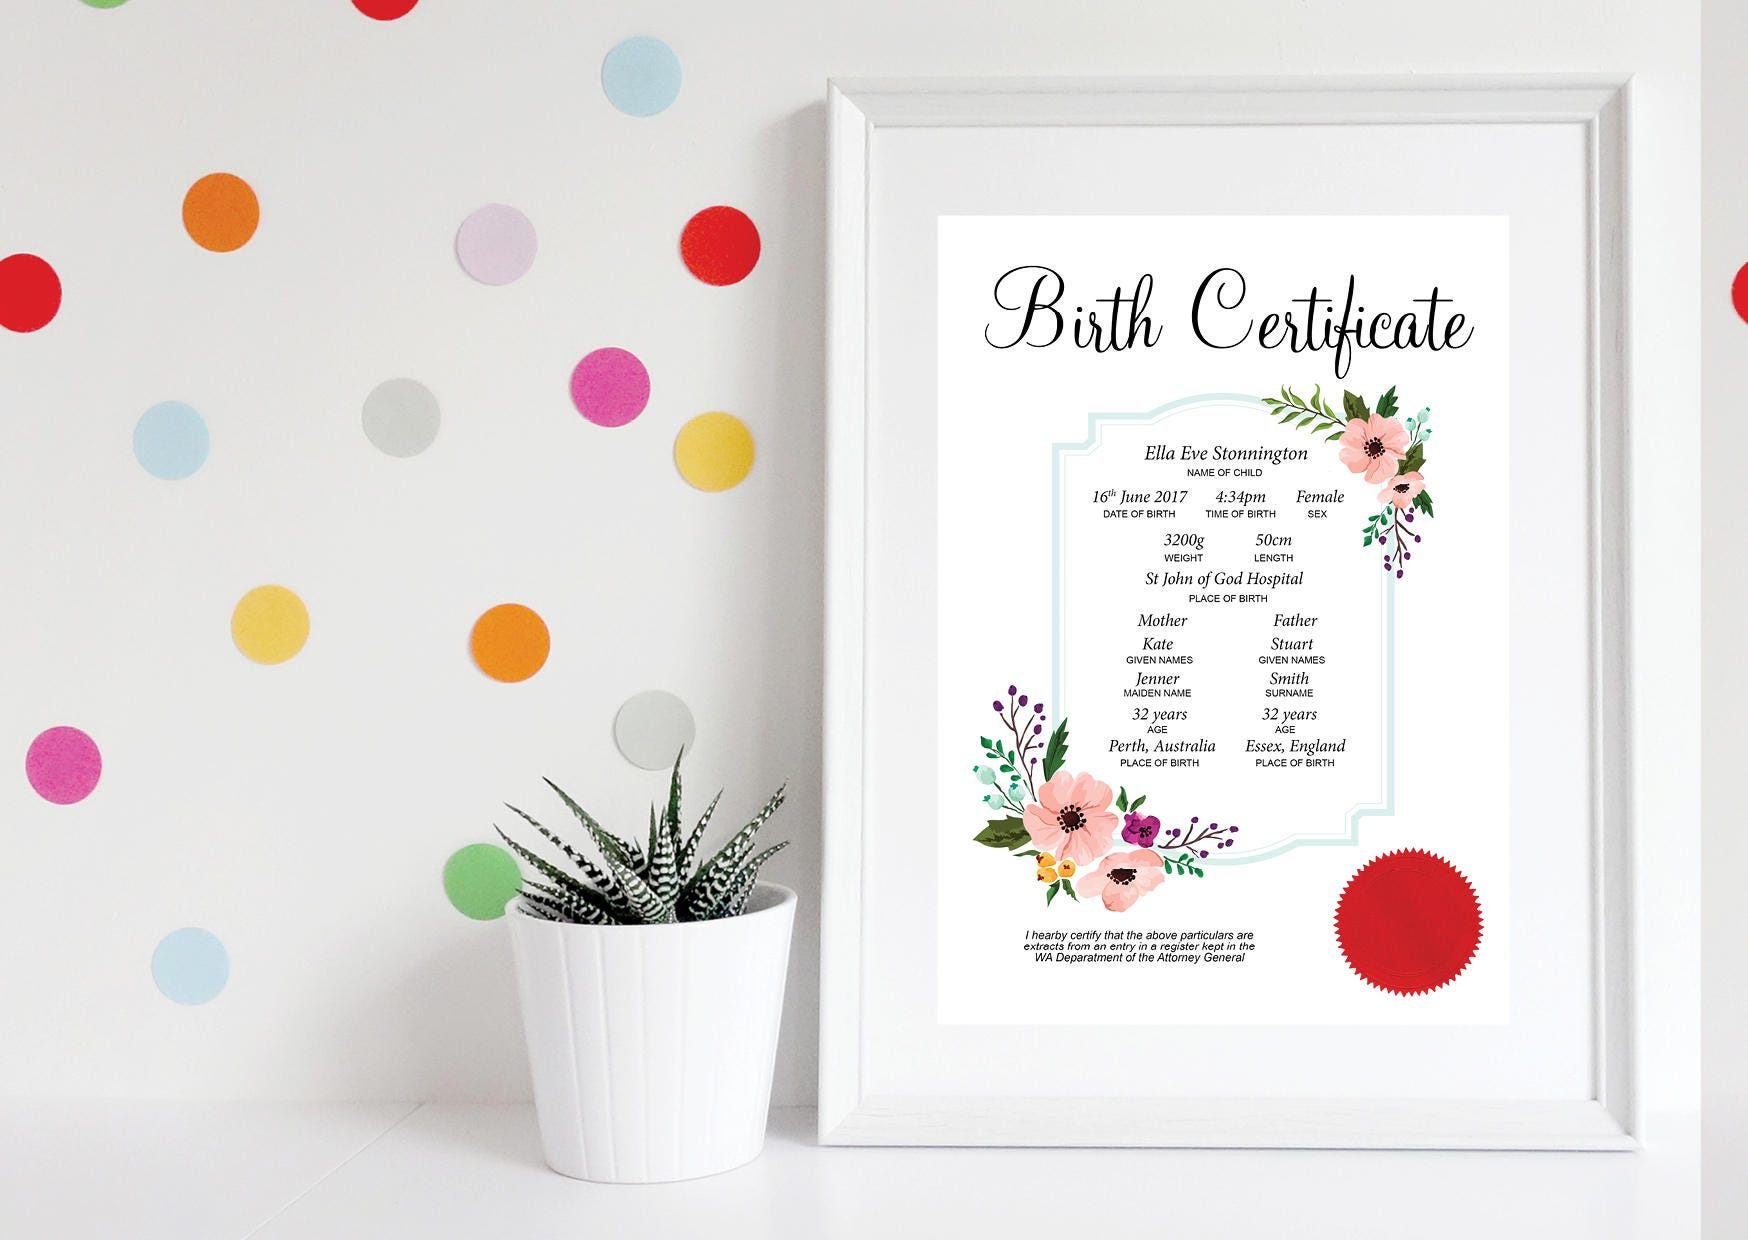 Printable birth certificate baby girl birth certificate request a custom order and have something made just for you aiddatafo Image collections